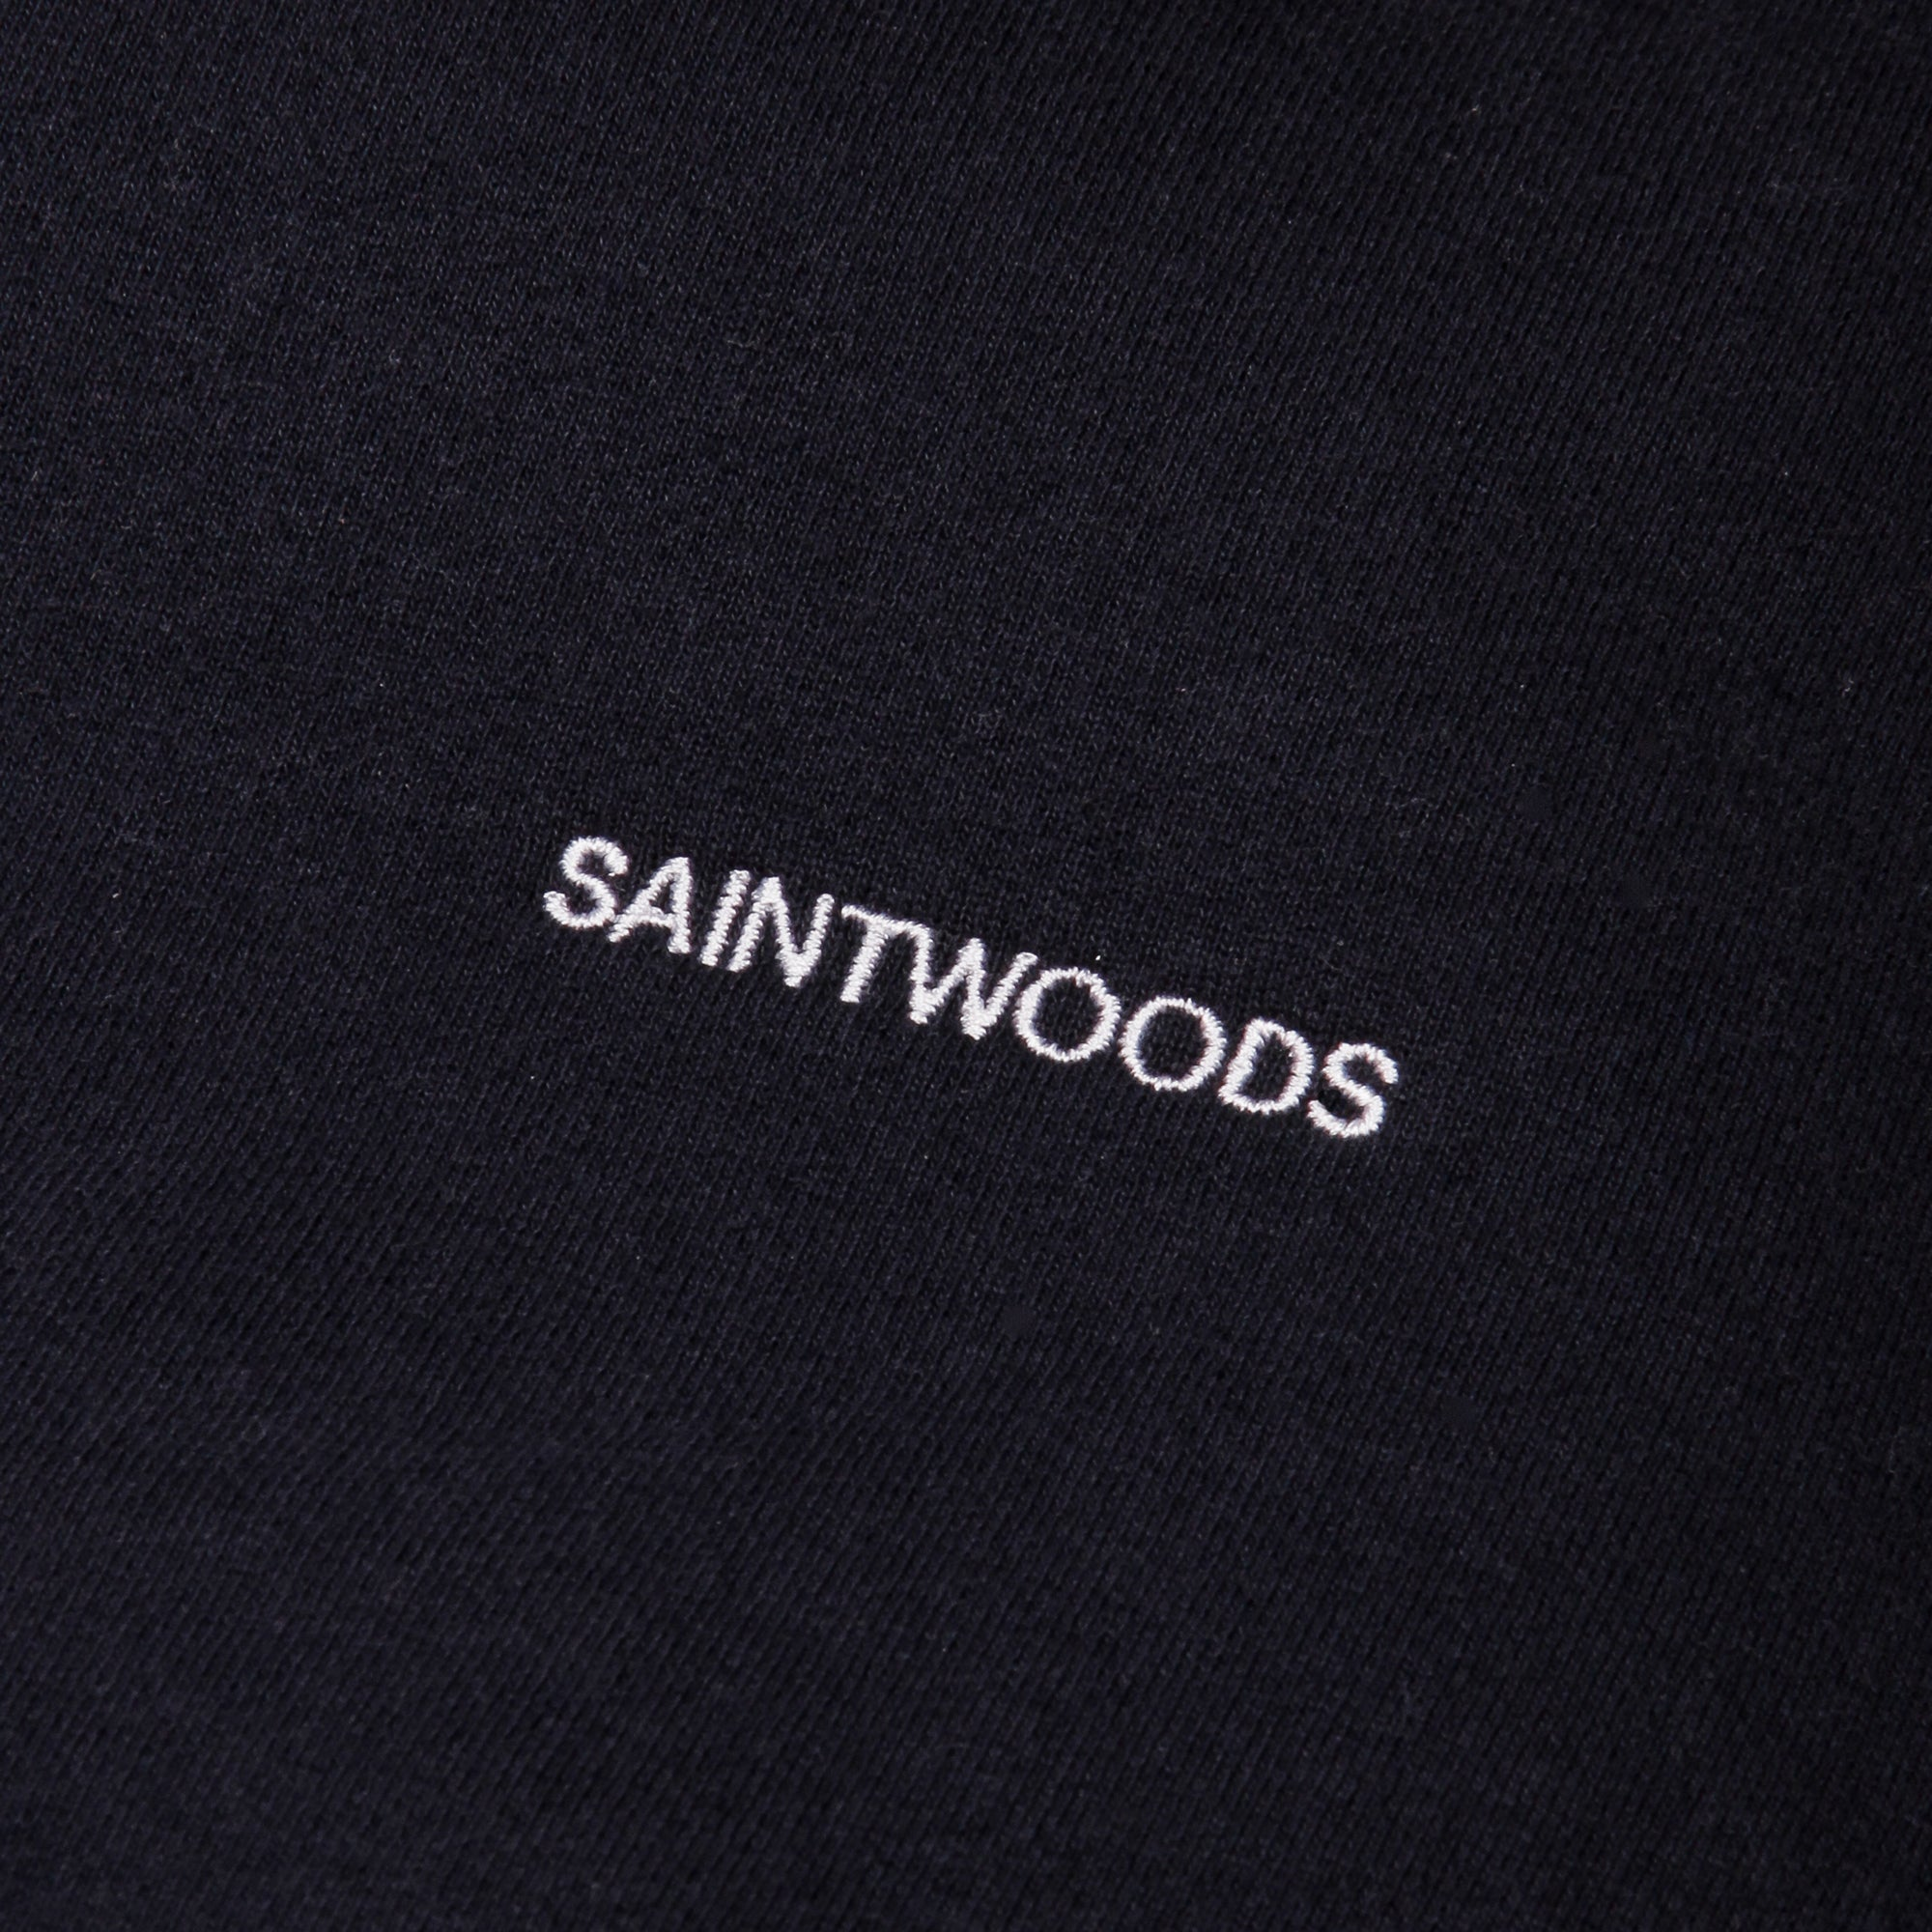 SW Navy Sweatpants - Pants - Saintwoods